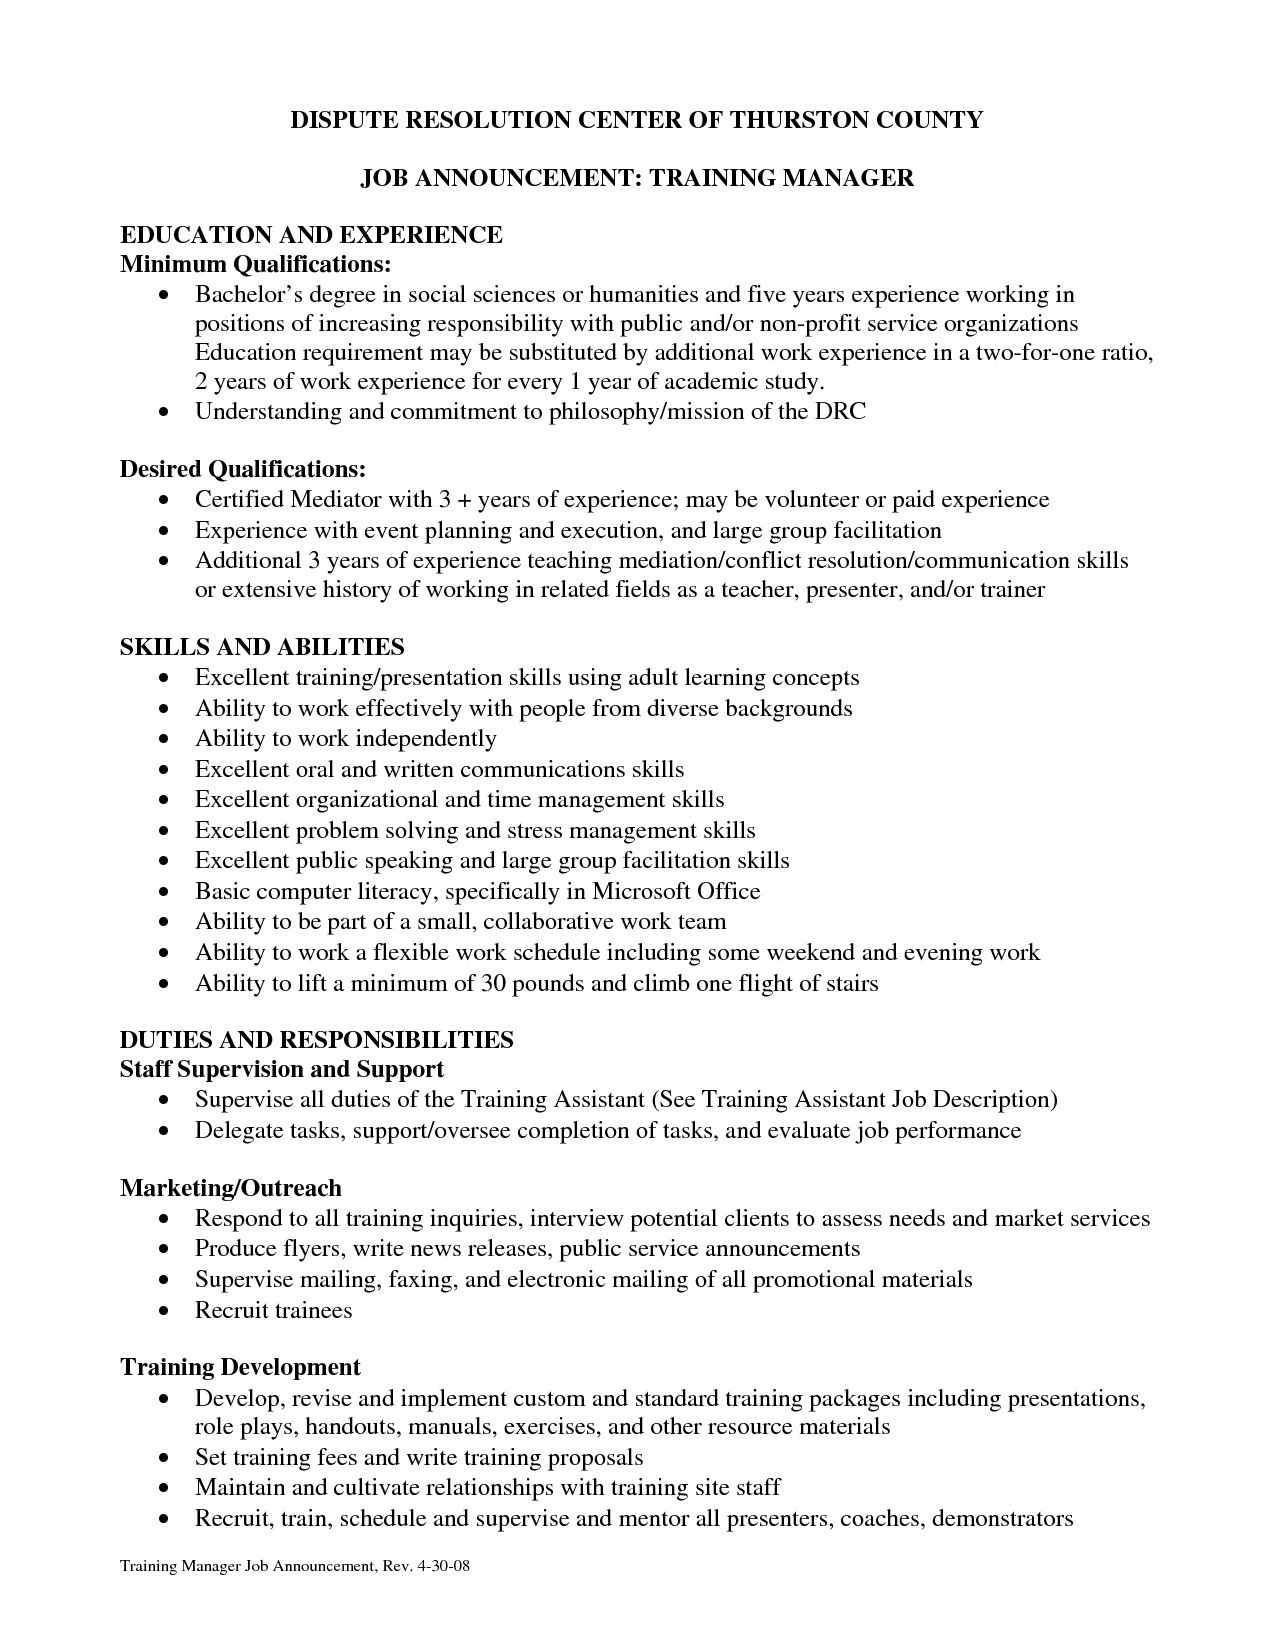 Elegant Training Coordinator Resume Cover Letter   Training Coordinator Resume  Cover Letter We Provide As Reference To Make Correct And Good Quality Resume .